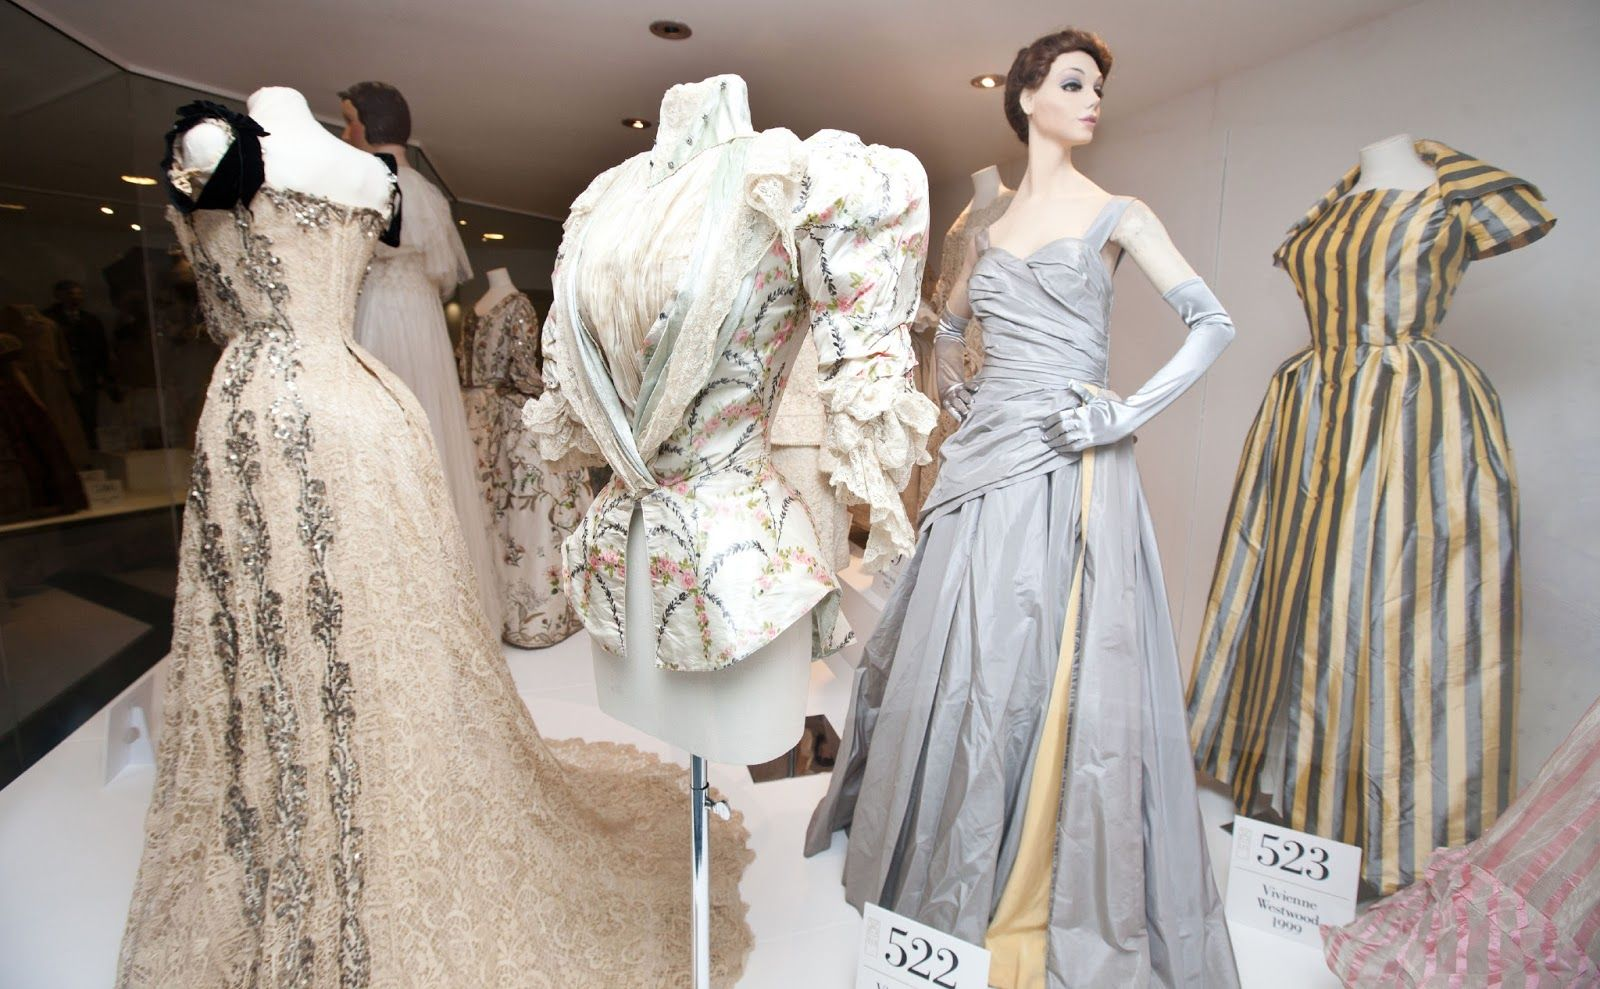 Bath's best museums - the Fashion Museum displays an array of amazing outfits